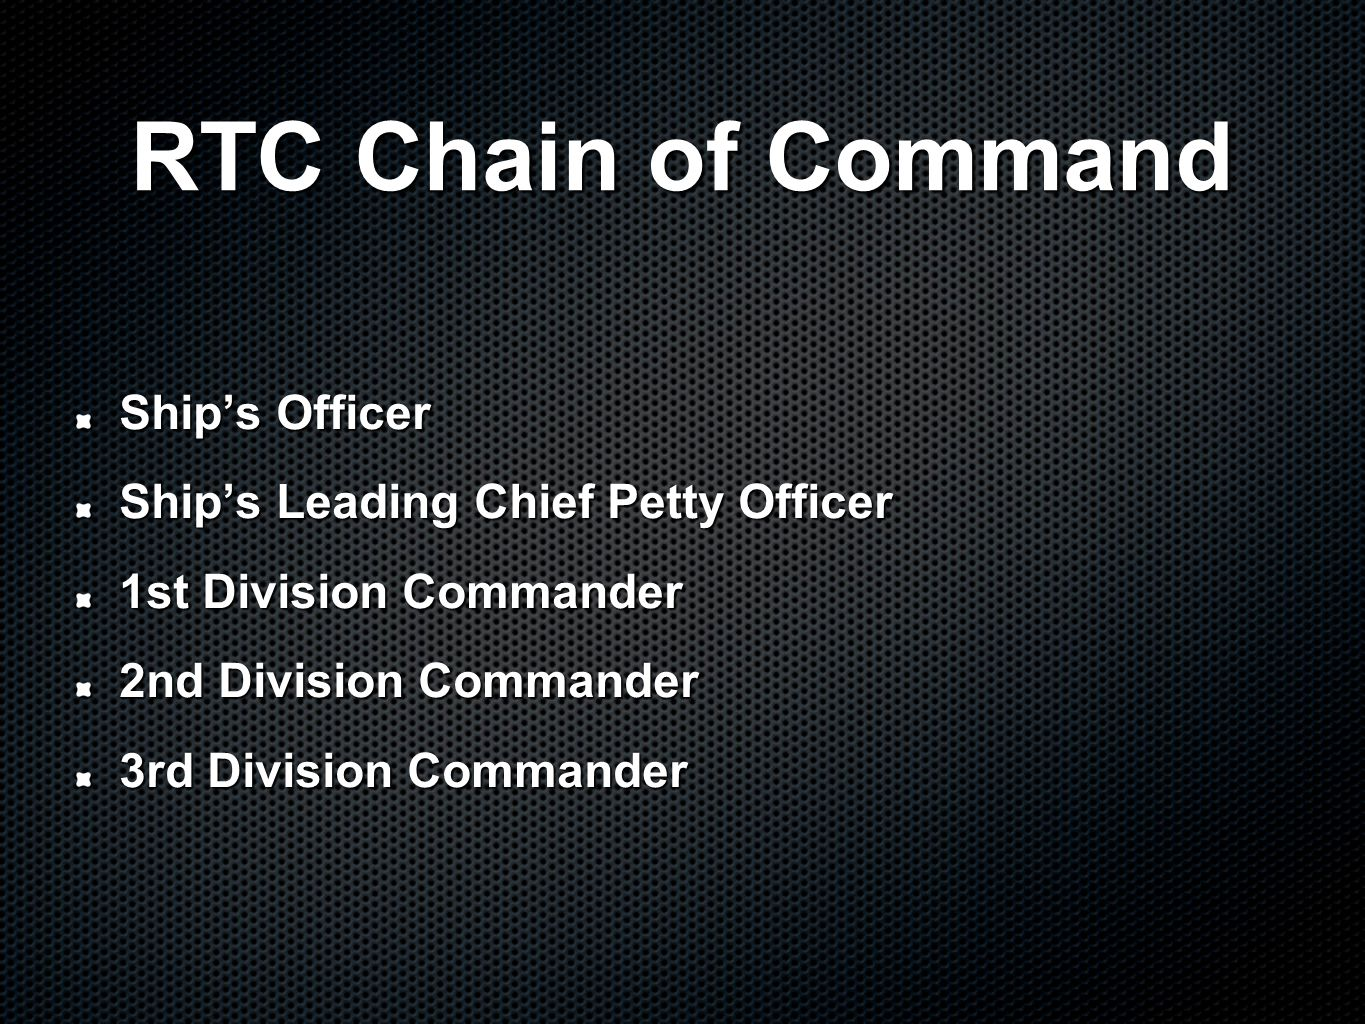 RTC Chain of Command Ship's Officer Ship's Leading Chief Petty Officer 1st Division Commander 2nd Division Commander 3rd Division Commander